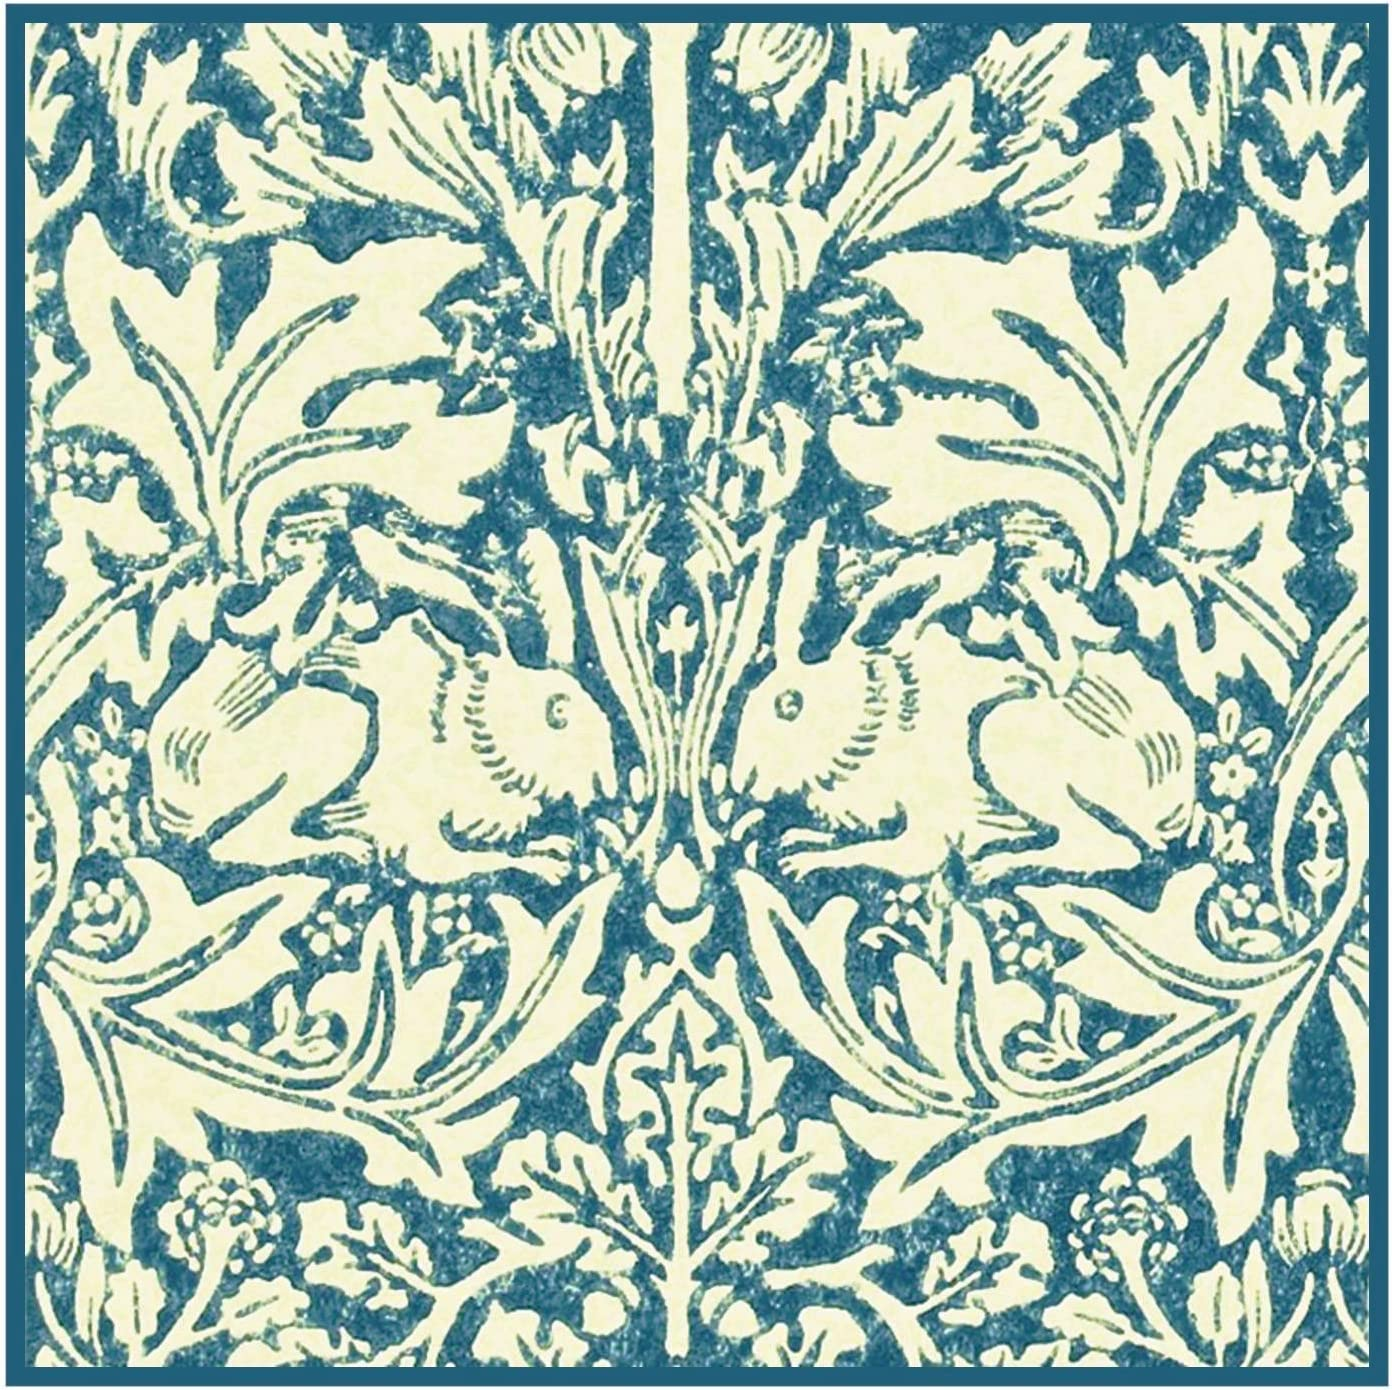 Orenco Originals Brother Rabbits Hares in Blues William Morris Design Counted Cross Stitch Pattern